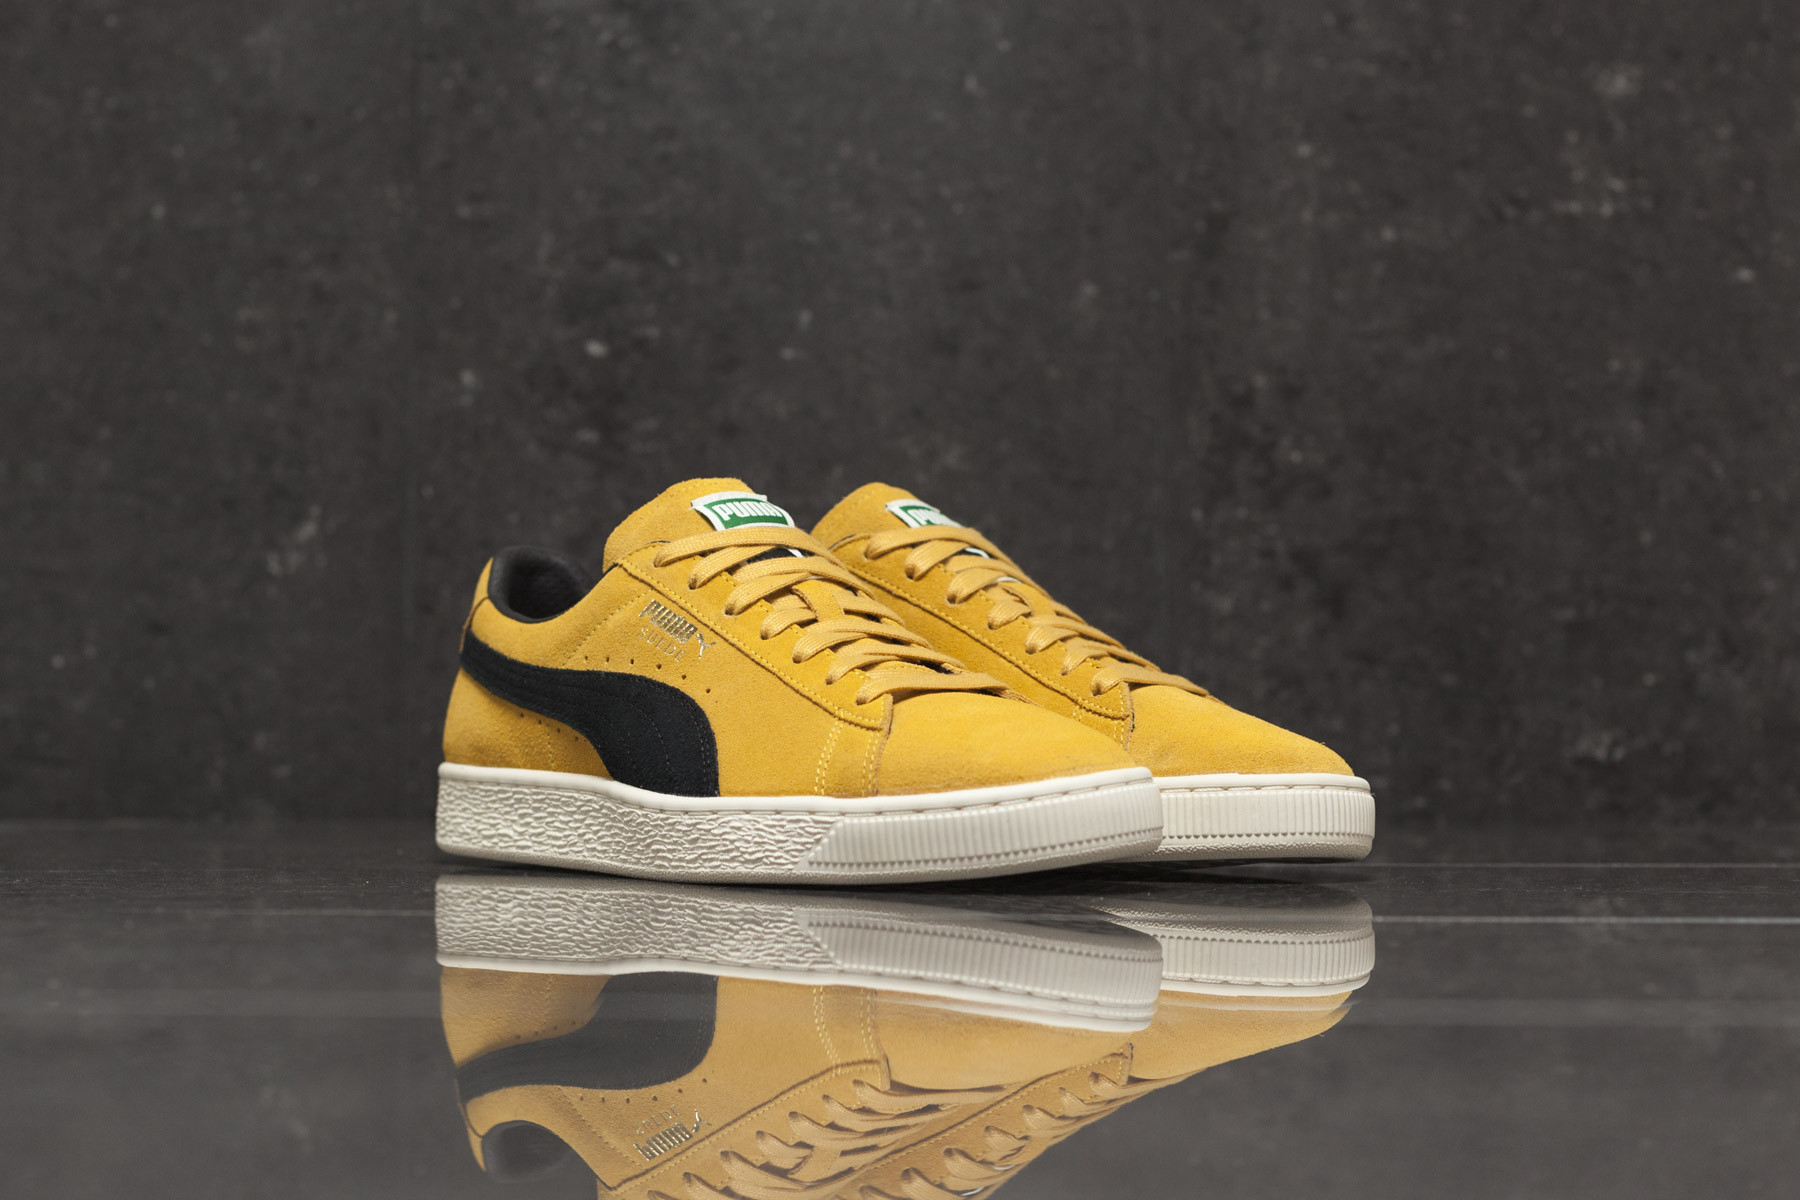 Puma Suede Classic Archive - Low-top - Sneakers - Sneaker.no 3b15a7a18